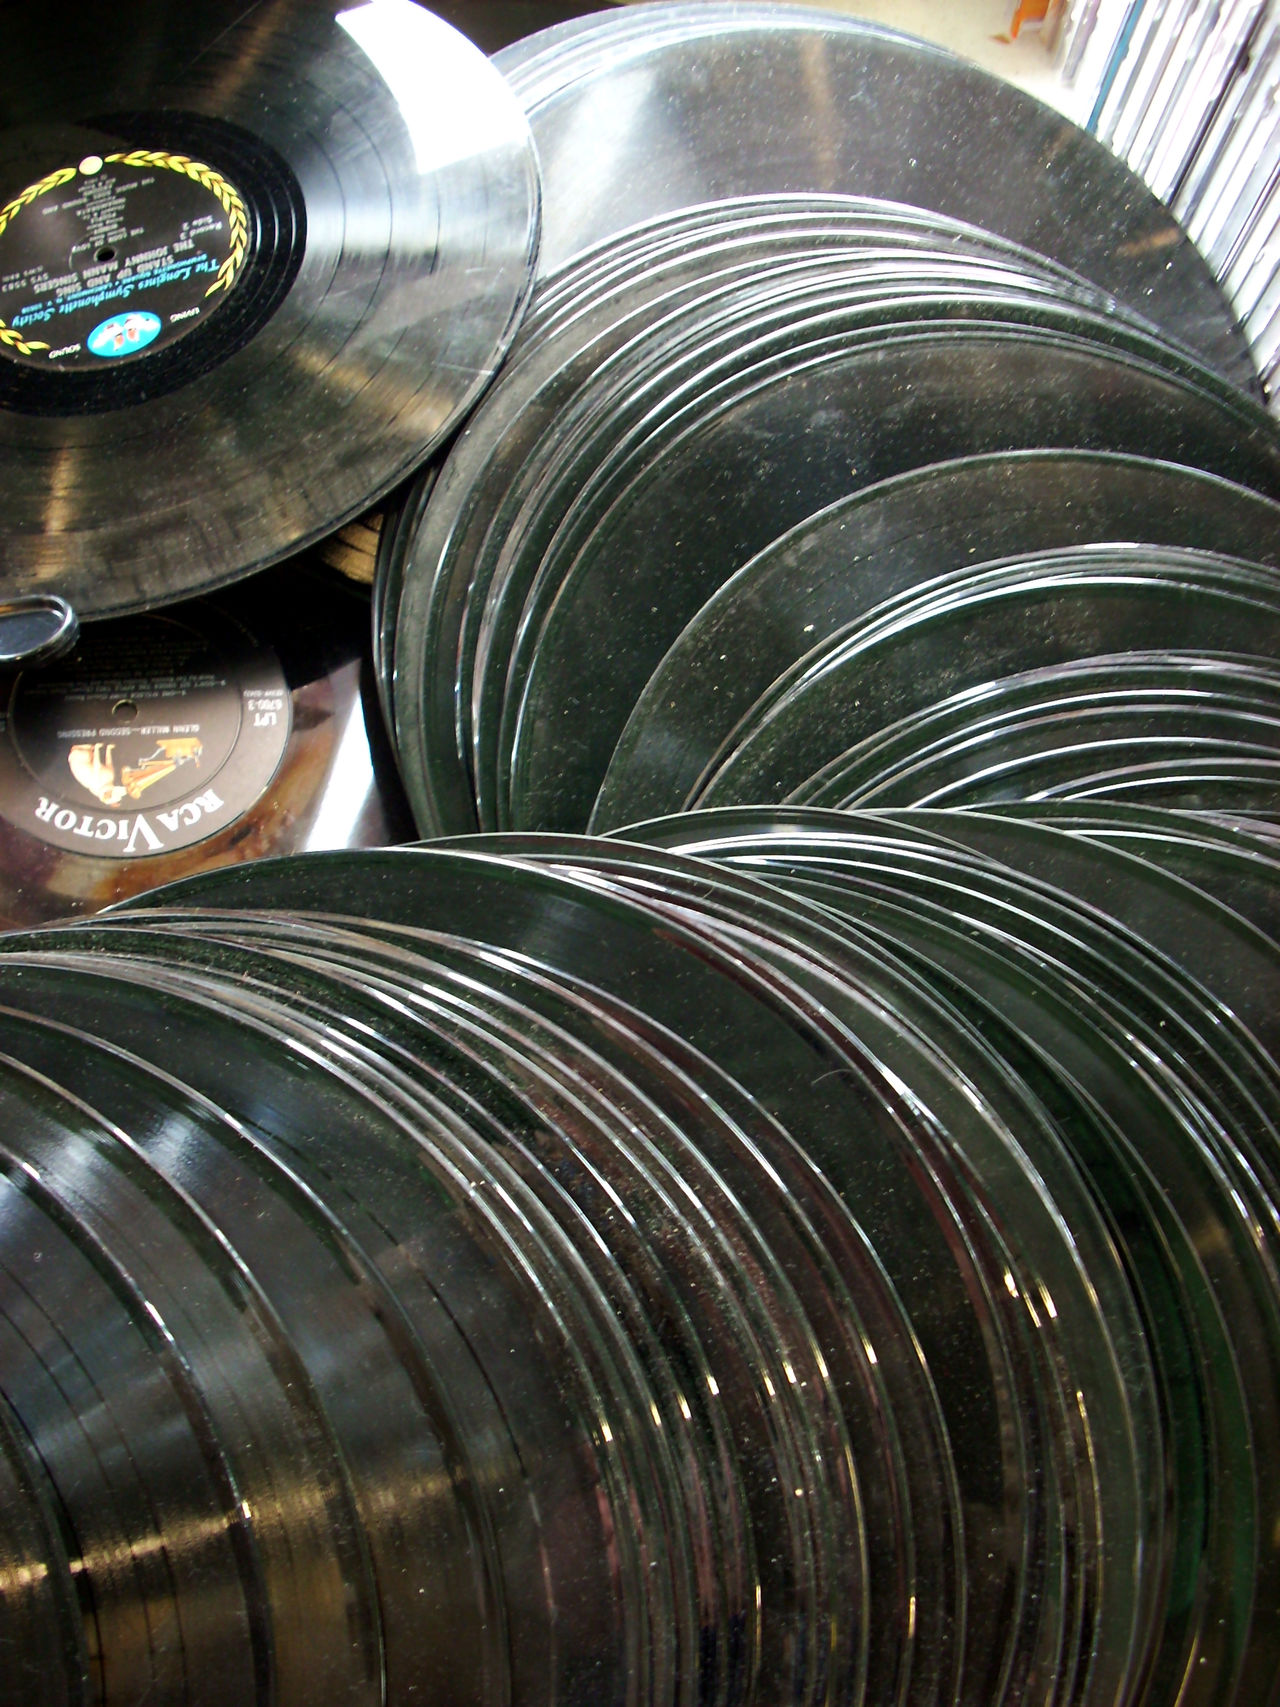 33 Rpm Antiques Backgrounds Black, White & Red Circle Dust Geometric Shape Modern Music Records Repetition Vinyl First Eyeem Photo